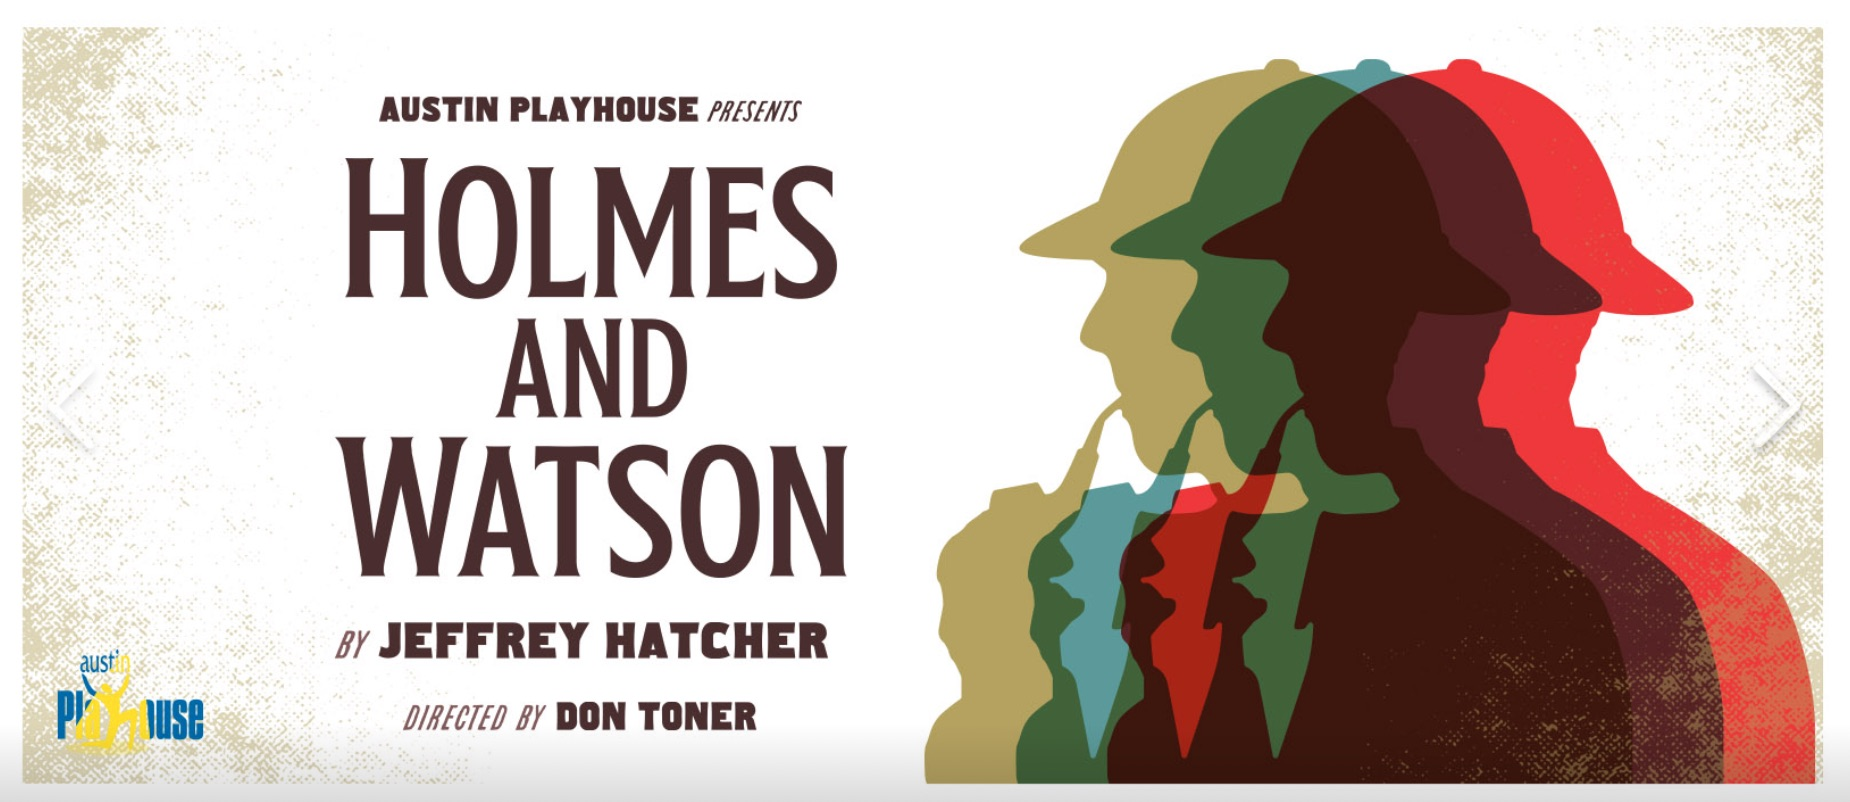 Holmes and Watson by Austin Playhouse